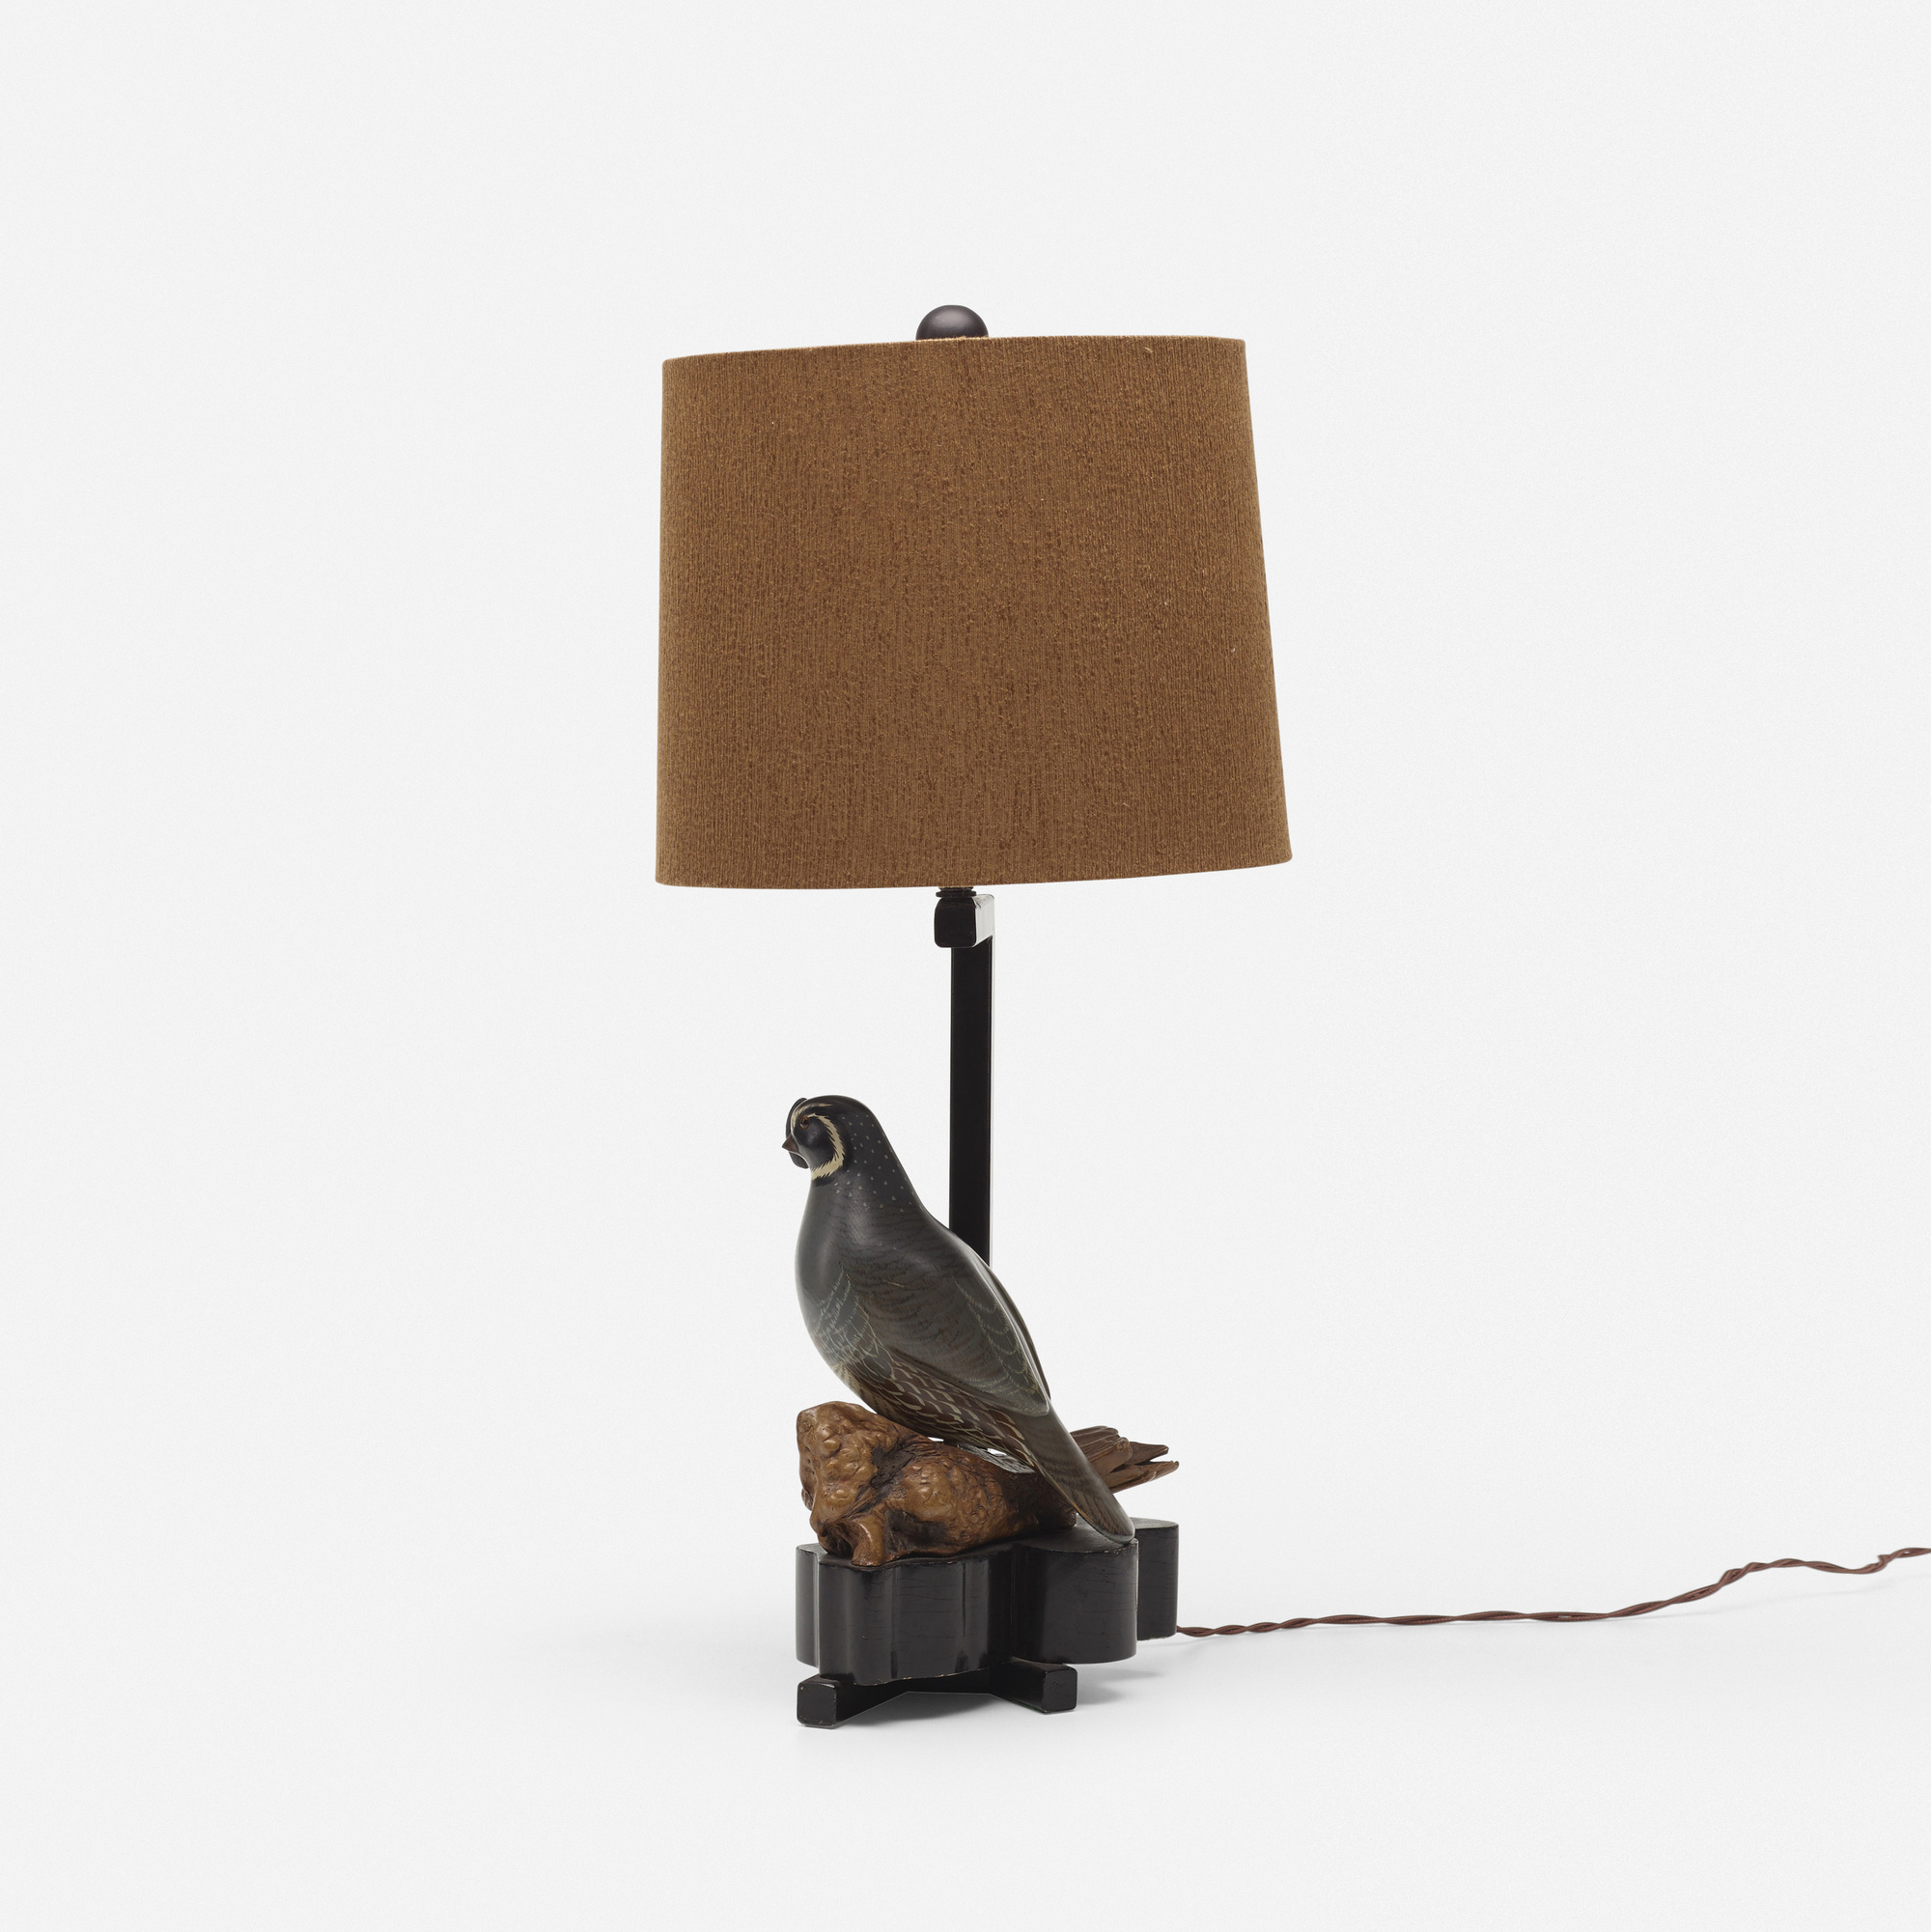 315: In The Manner Of William (Billy) Haines / table lamp (2 of 2)